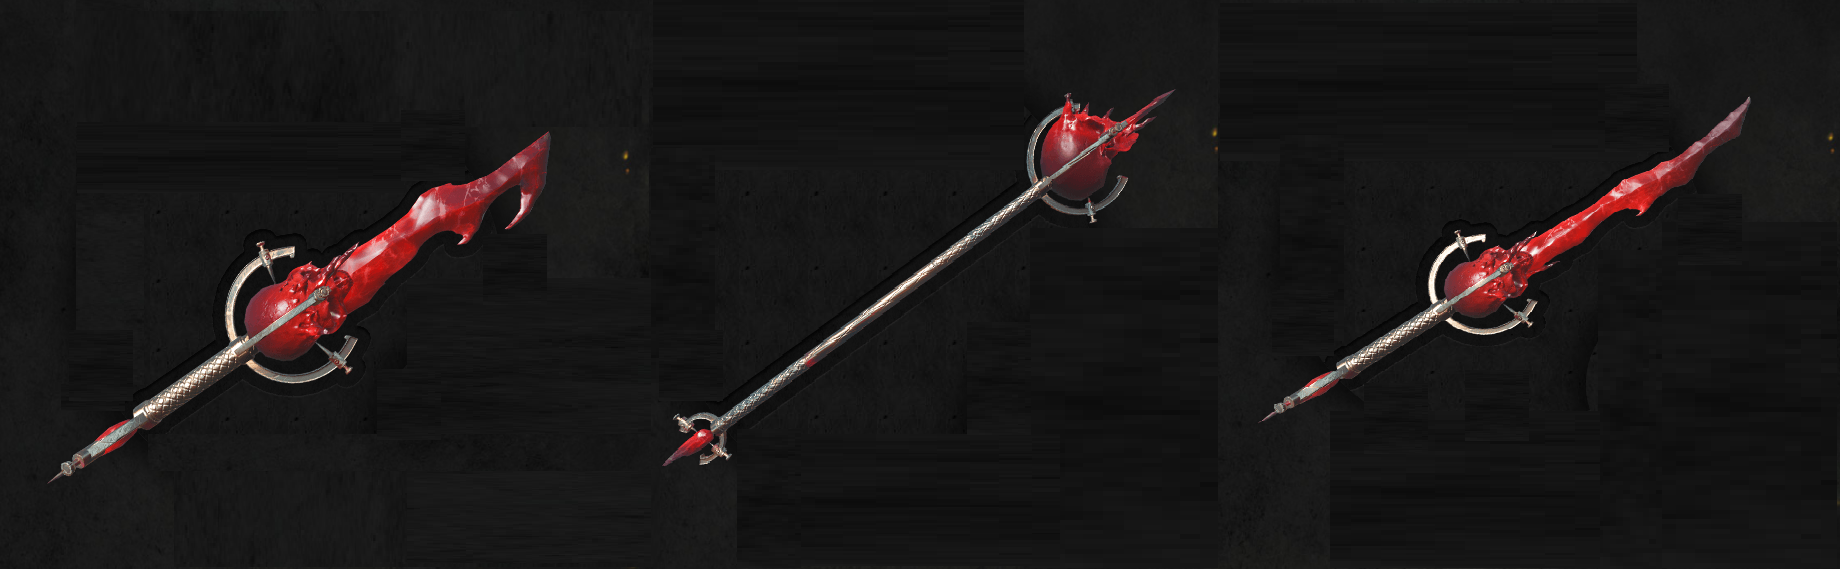 Red Lyrium Reapers Weapons Pack